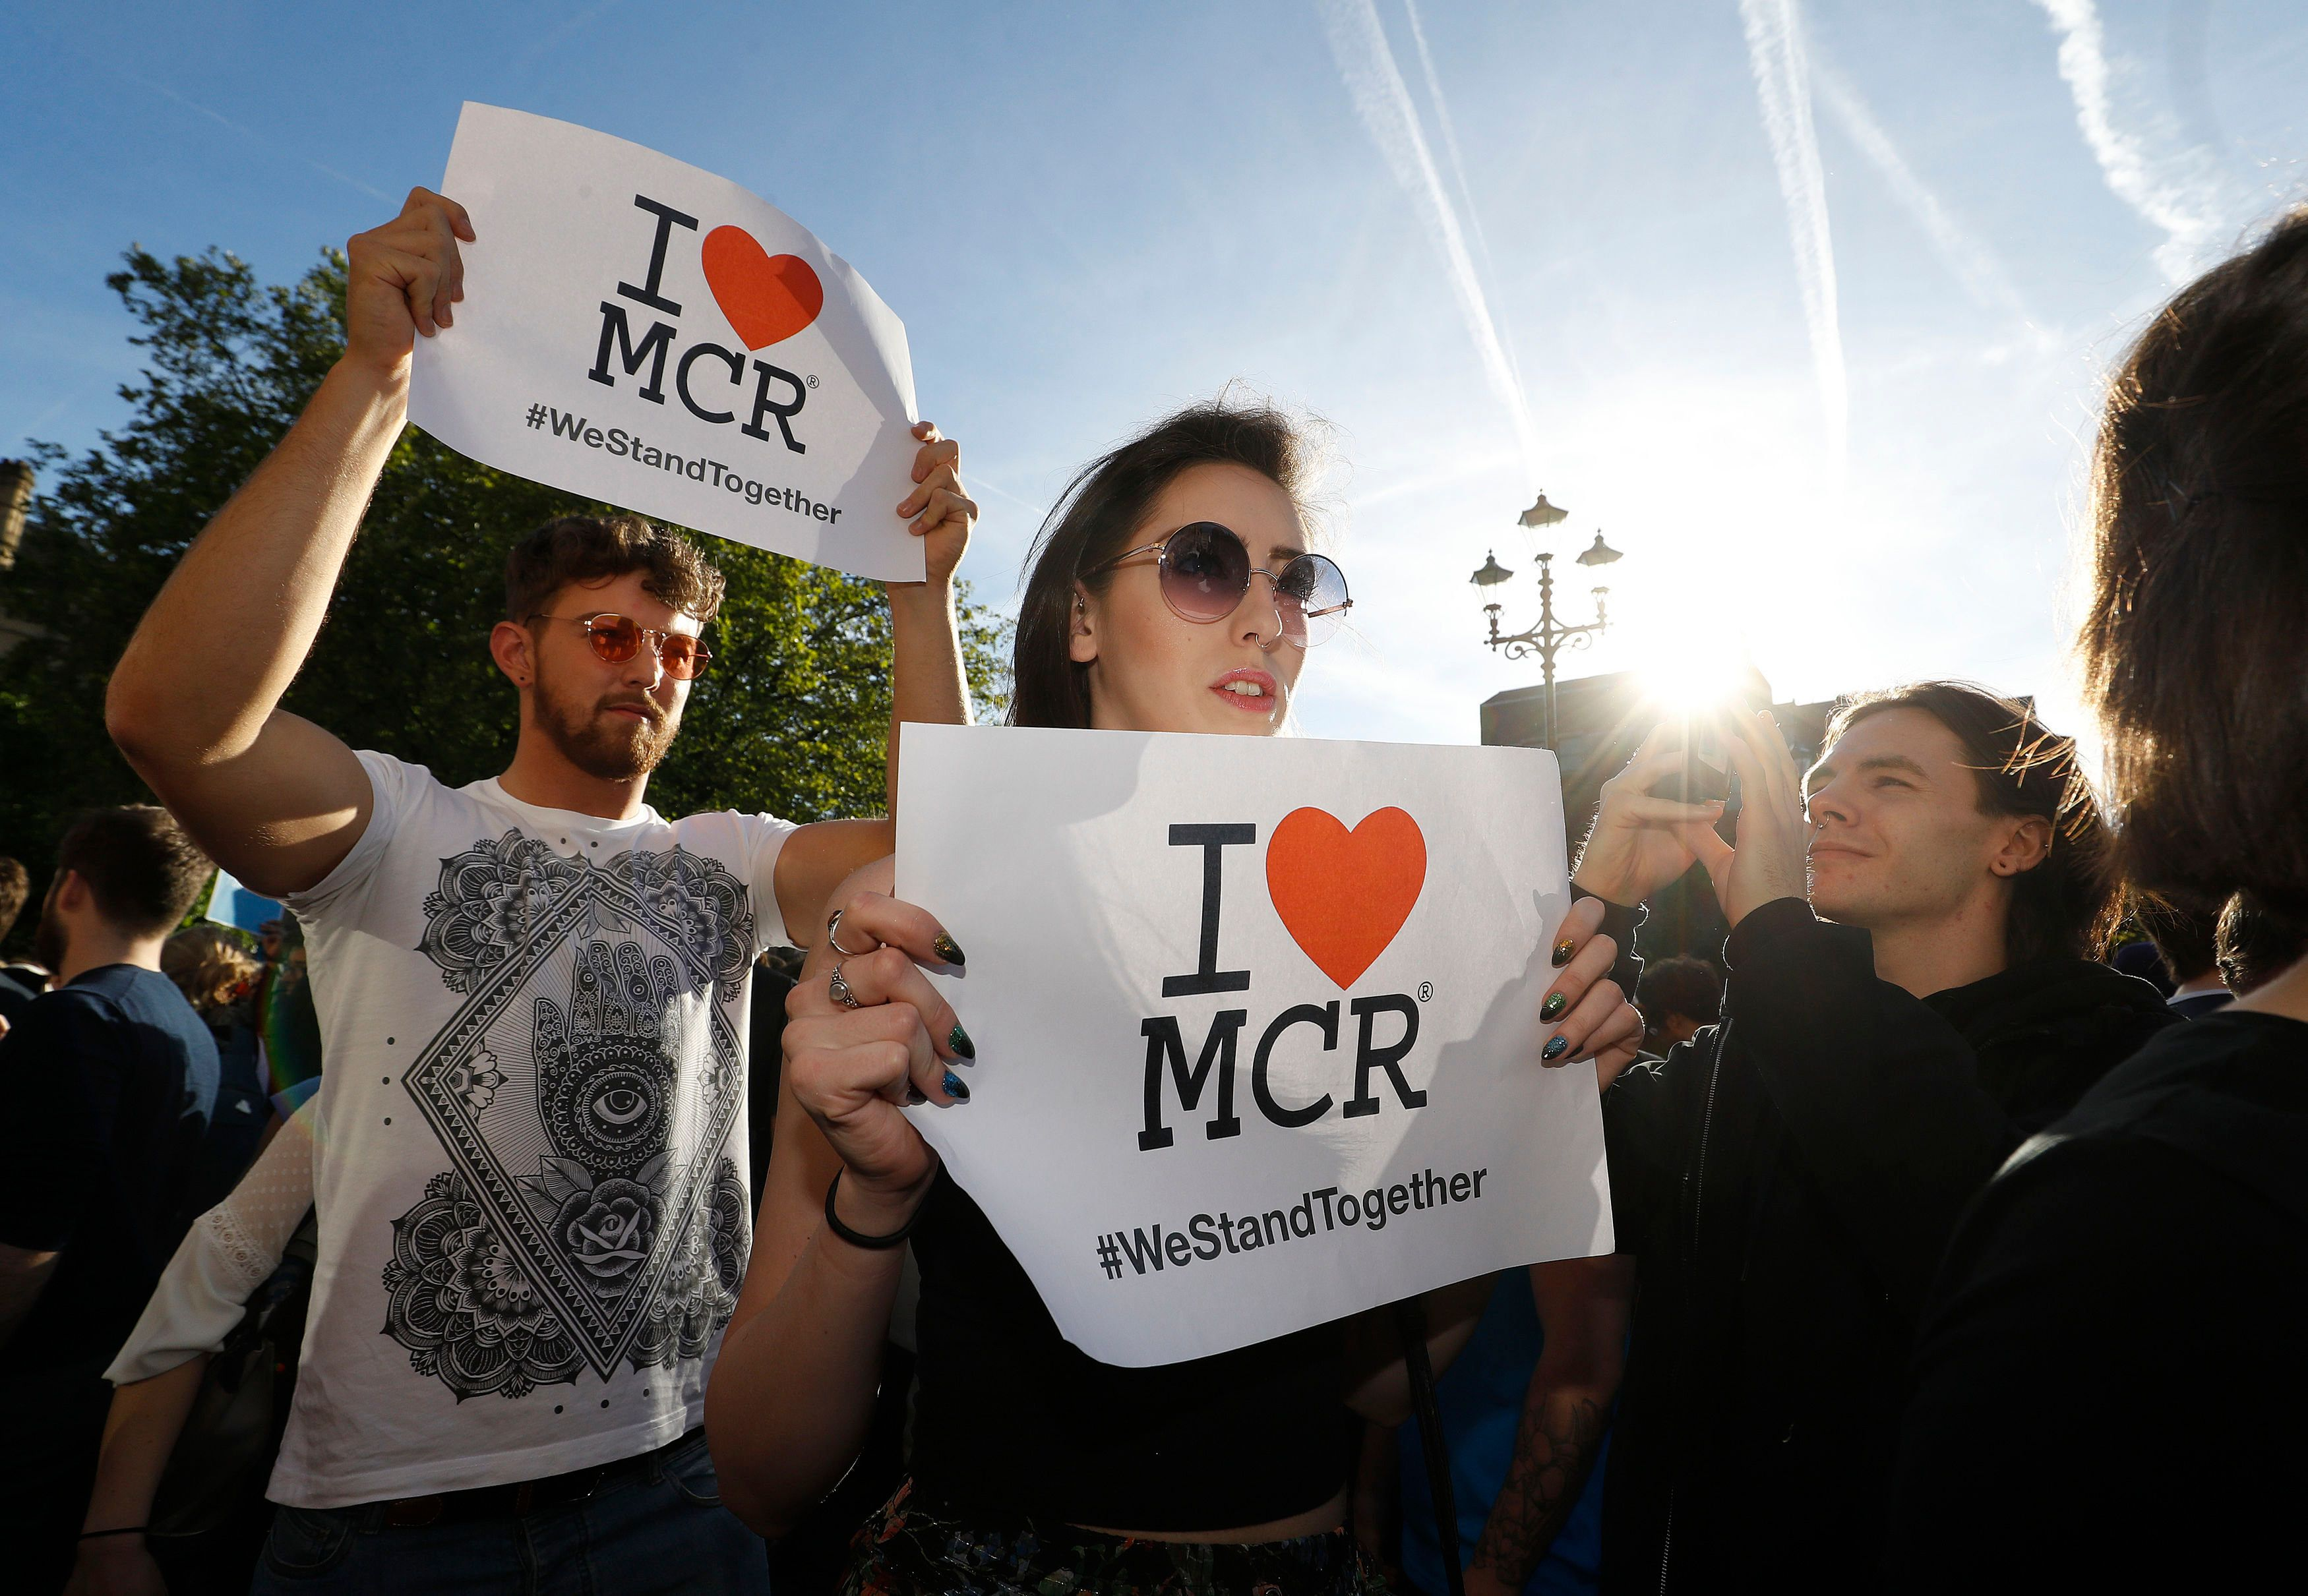 Everything We Know About The Manchester Bombing So